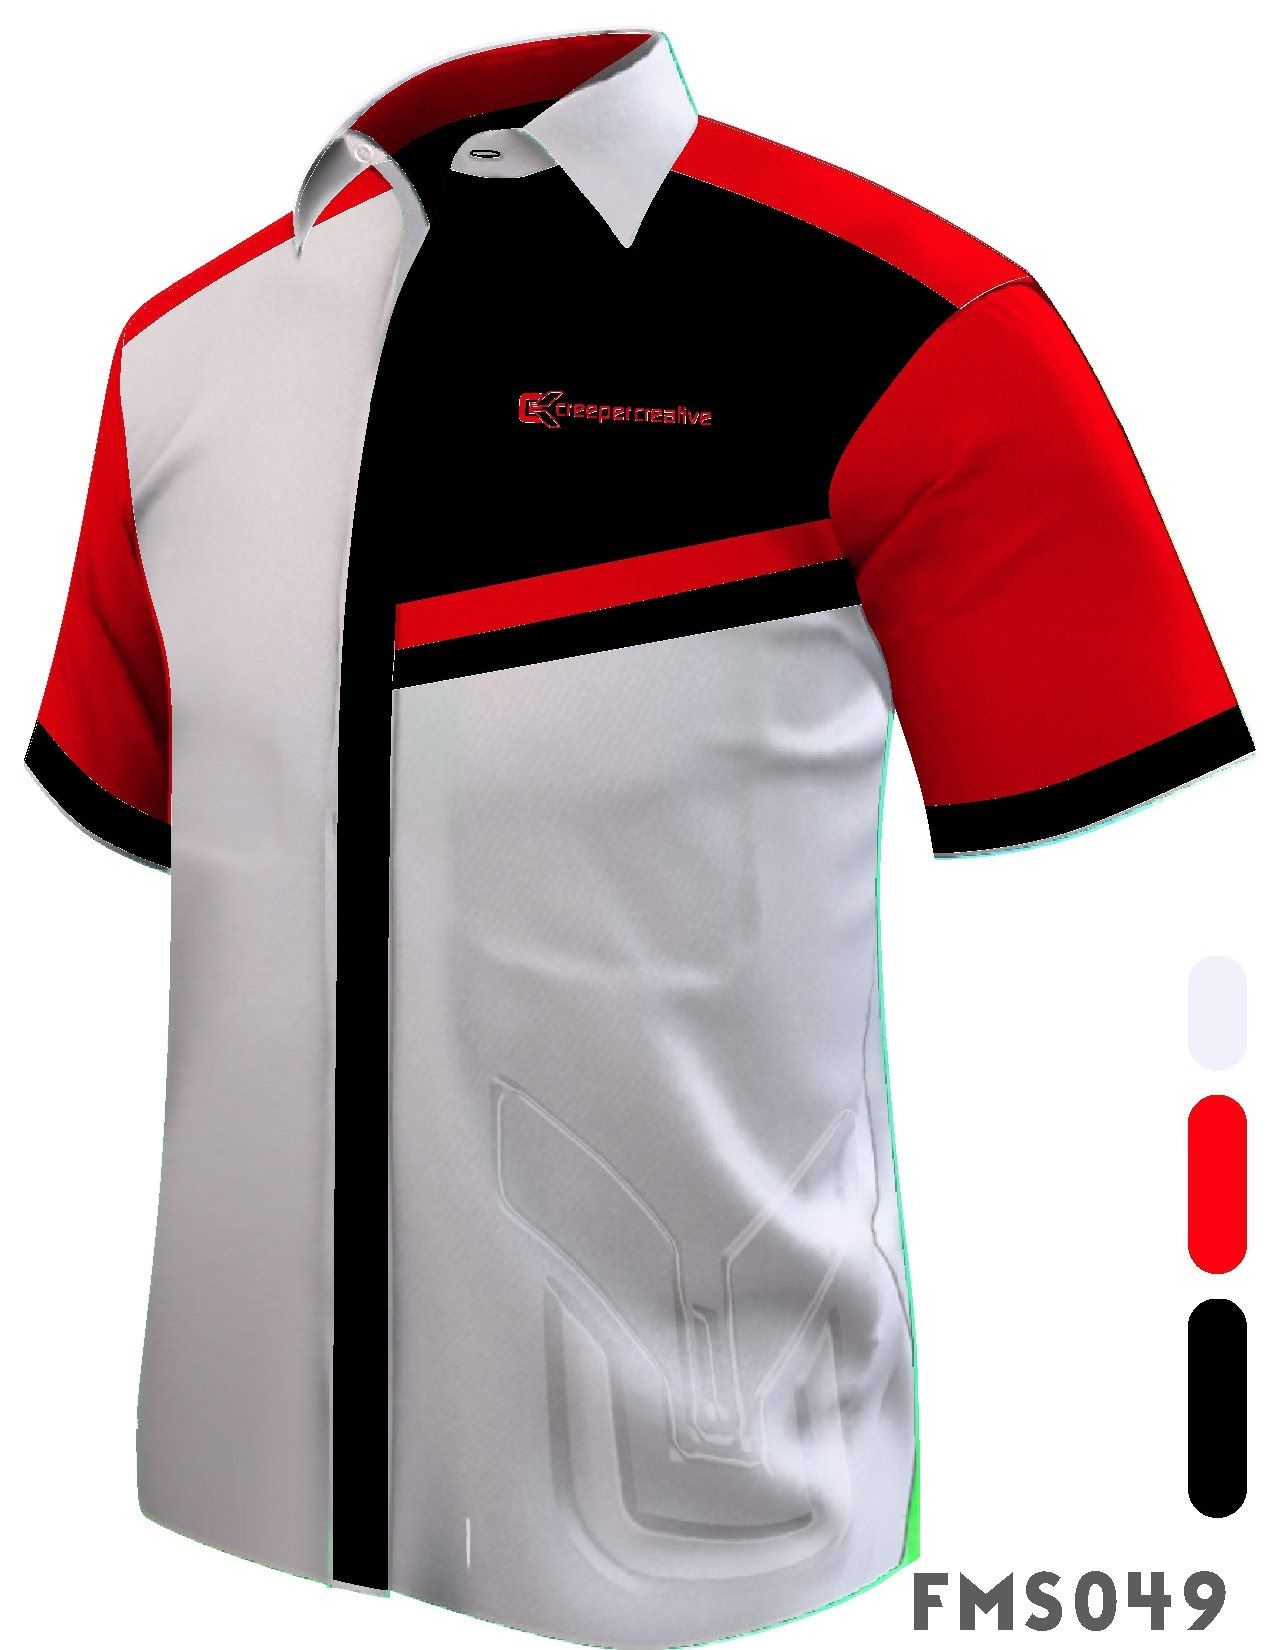 Baju Korporat Male Corporate Shirt Short Sleeveo c74eeb0889c182af 035bajuf1shirt